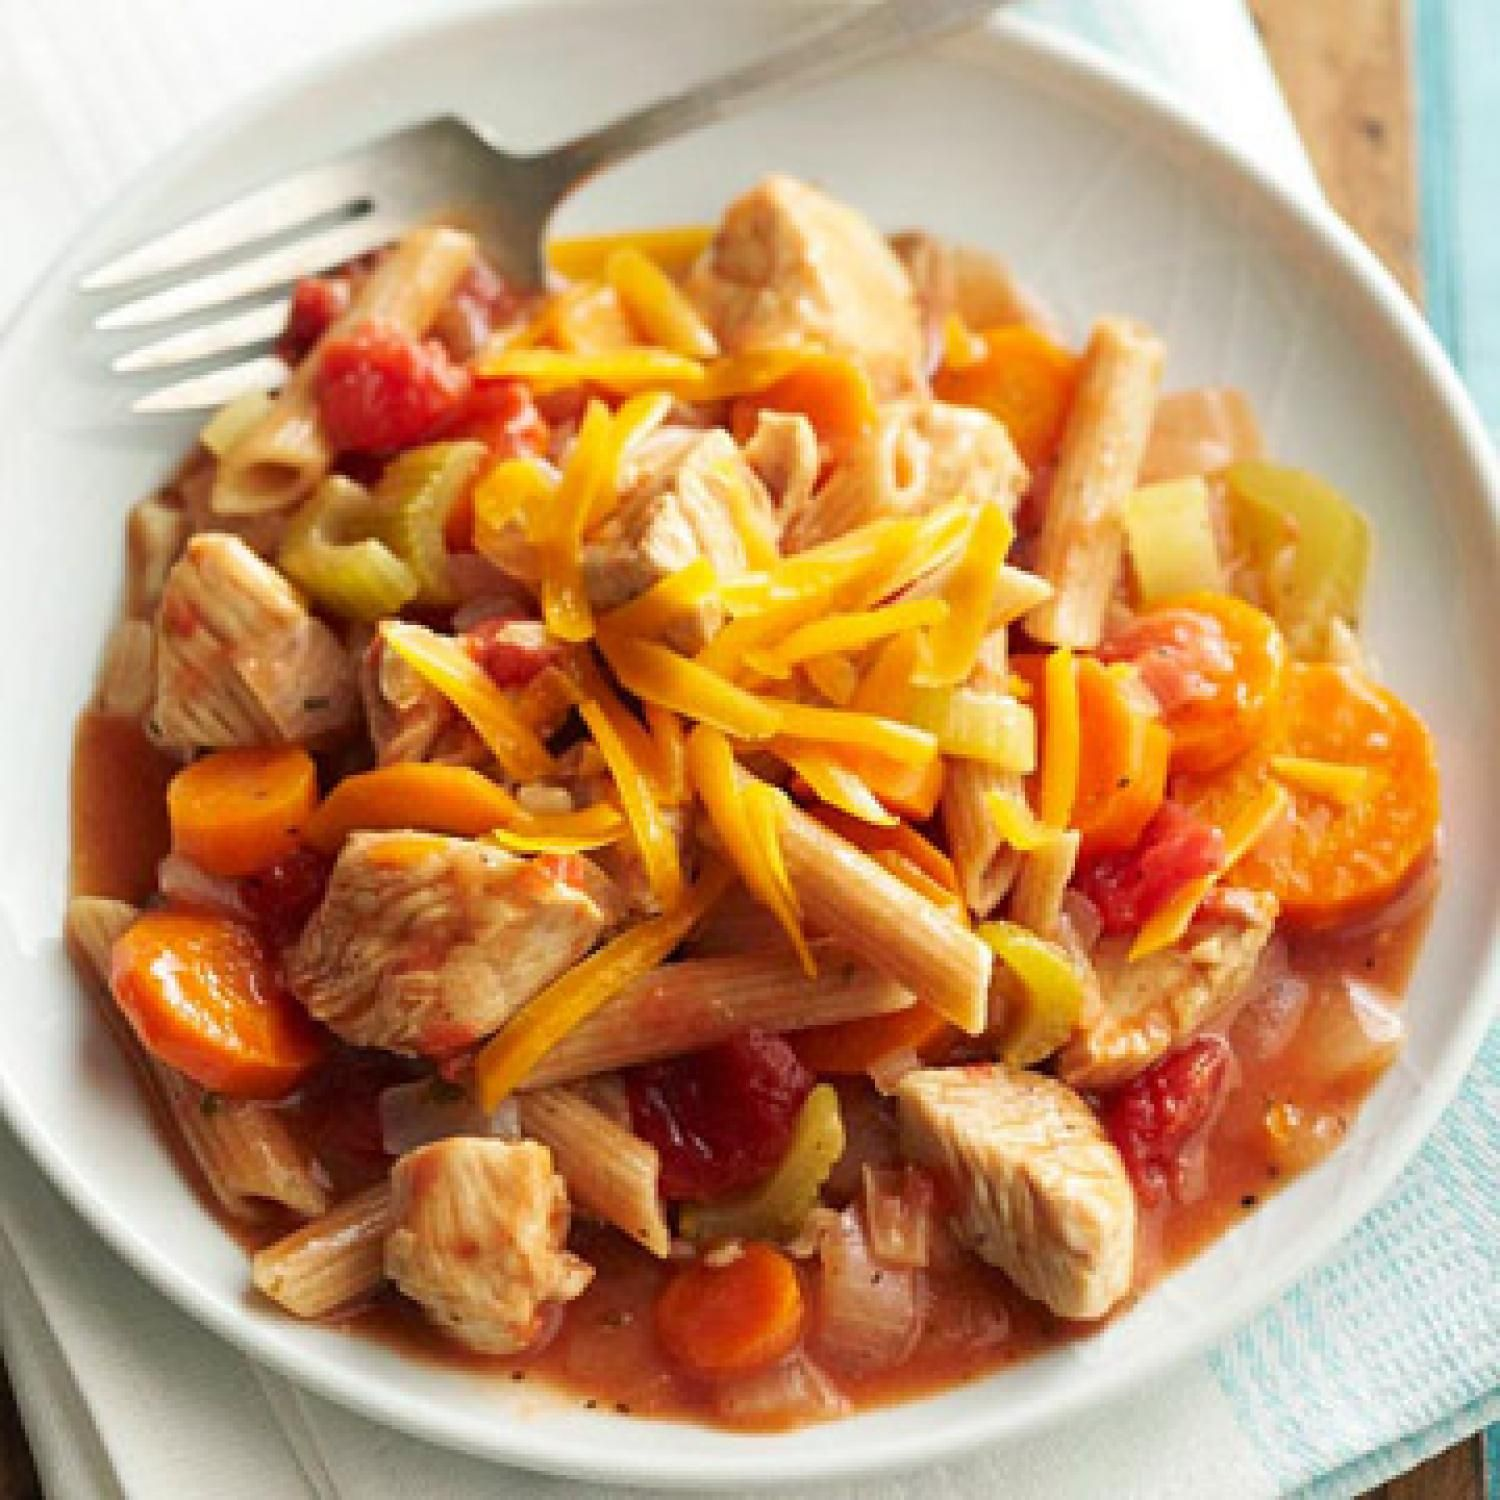 Healthy One Pot Meals 6 Easy Diabetic Dinner Recipes: Diabetic Slow Cooker Recipes